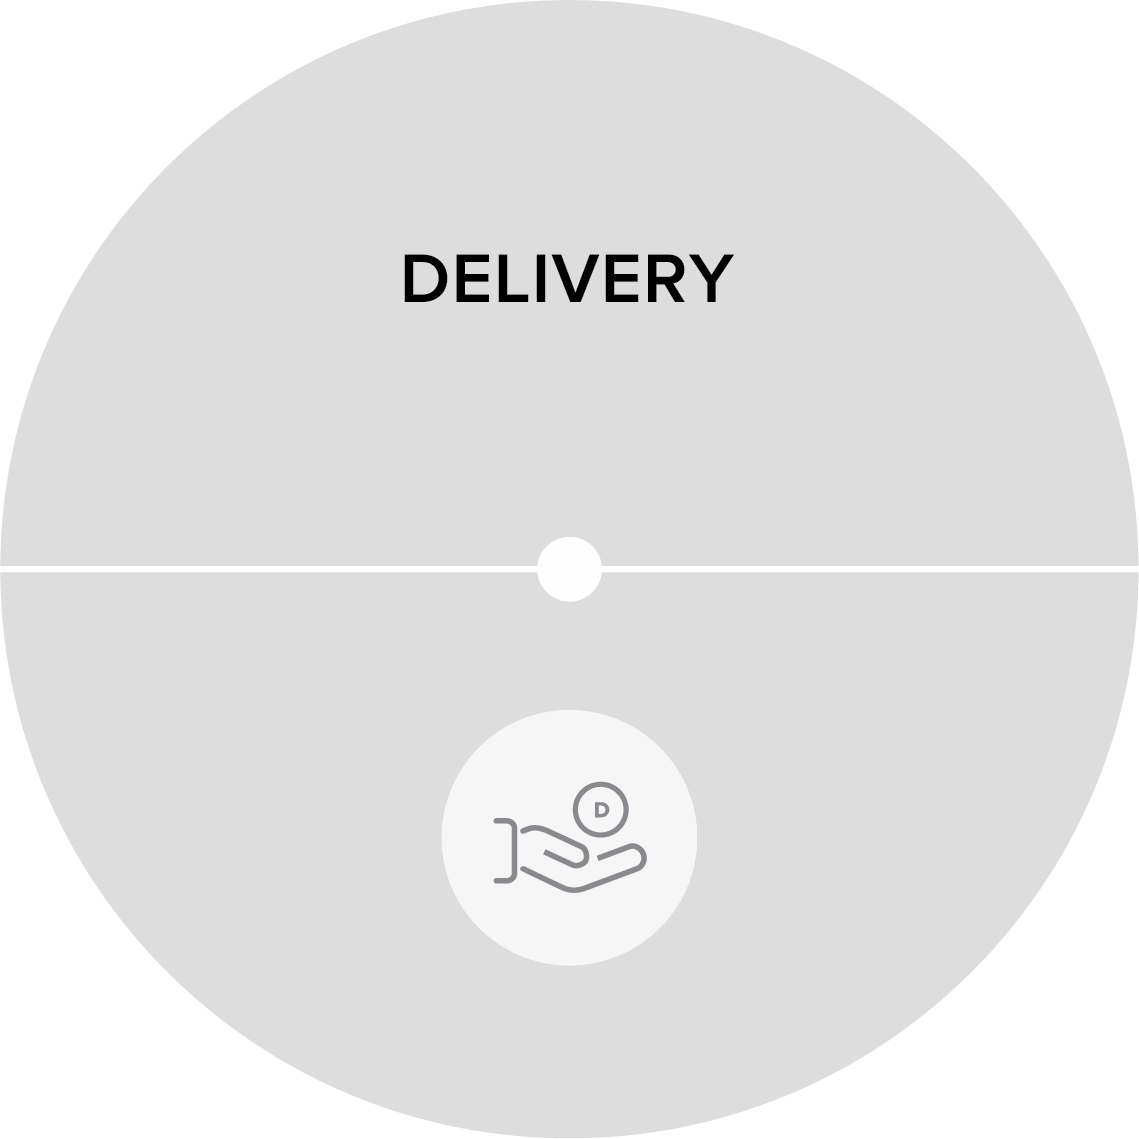 KDC_Delivery.png